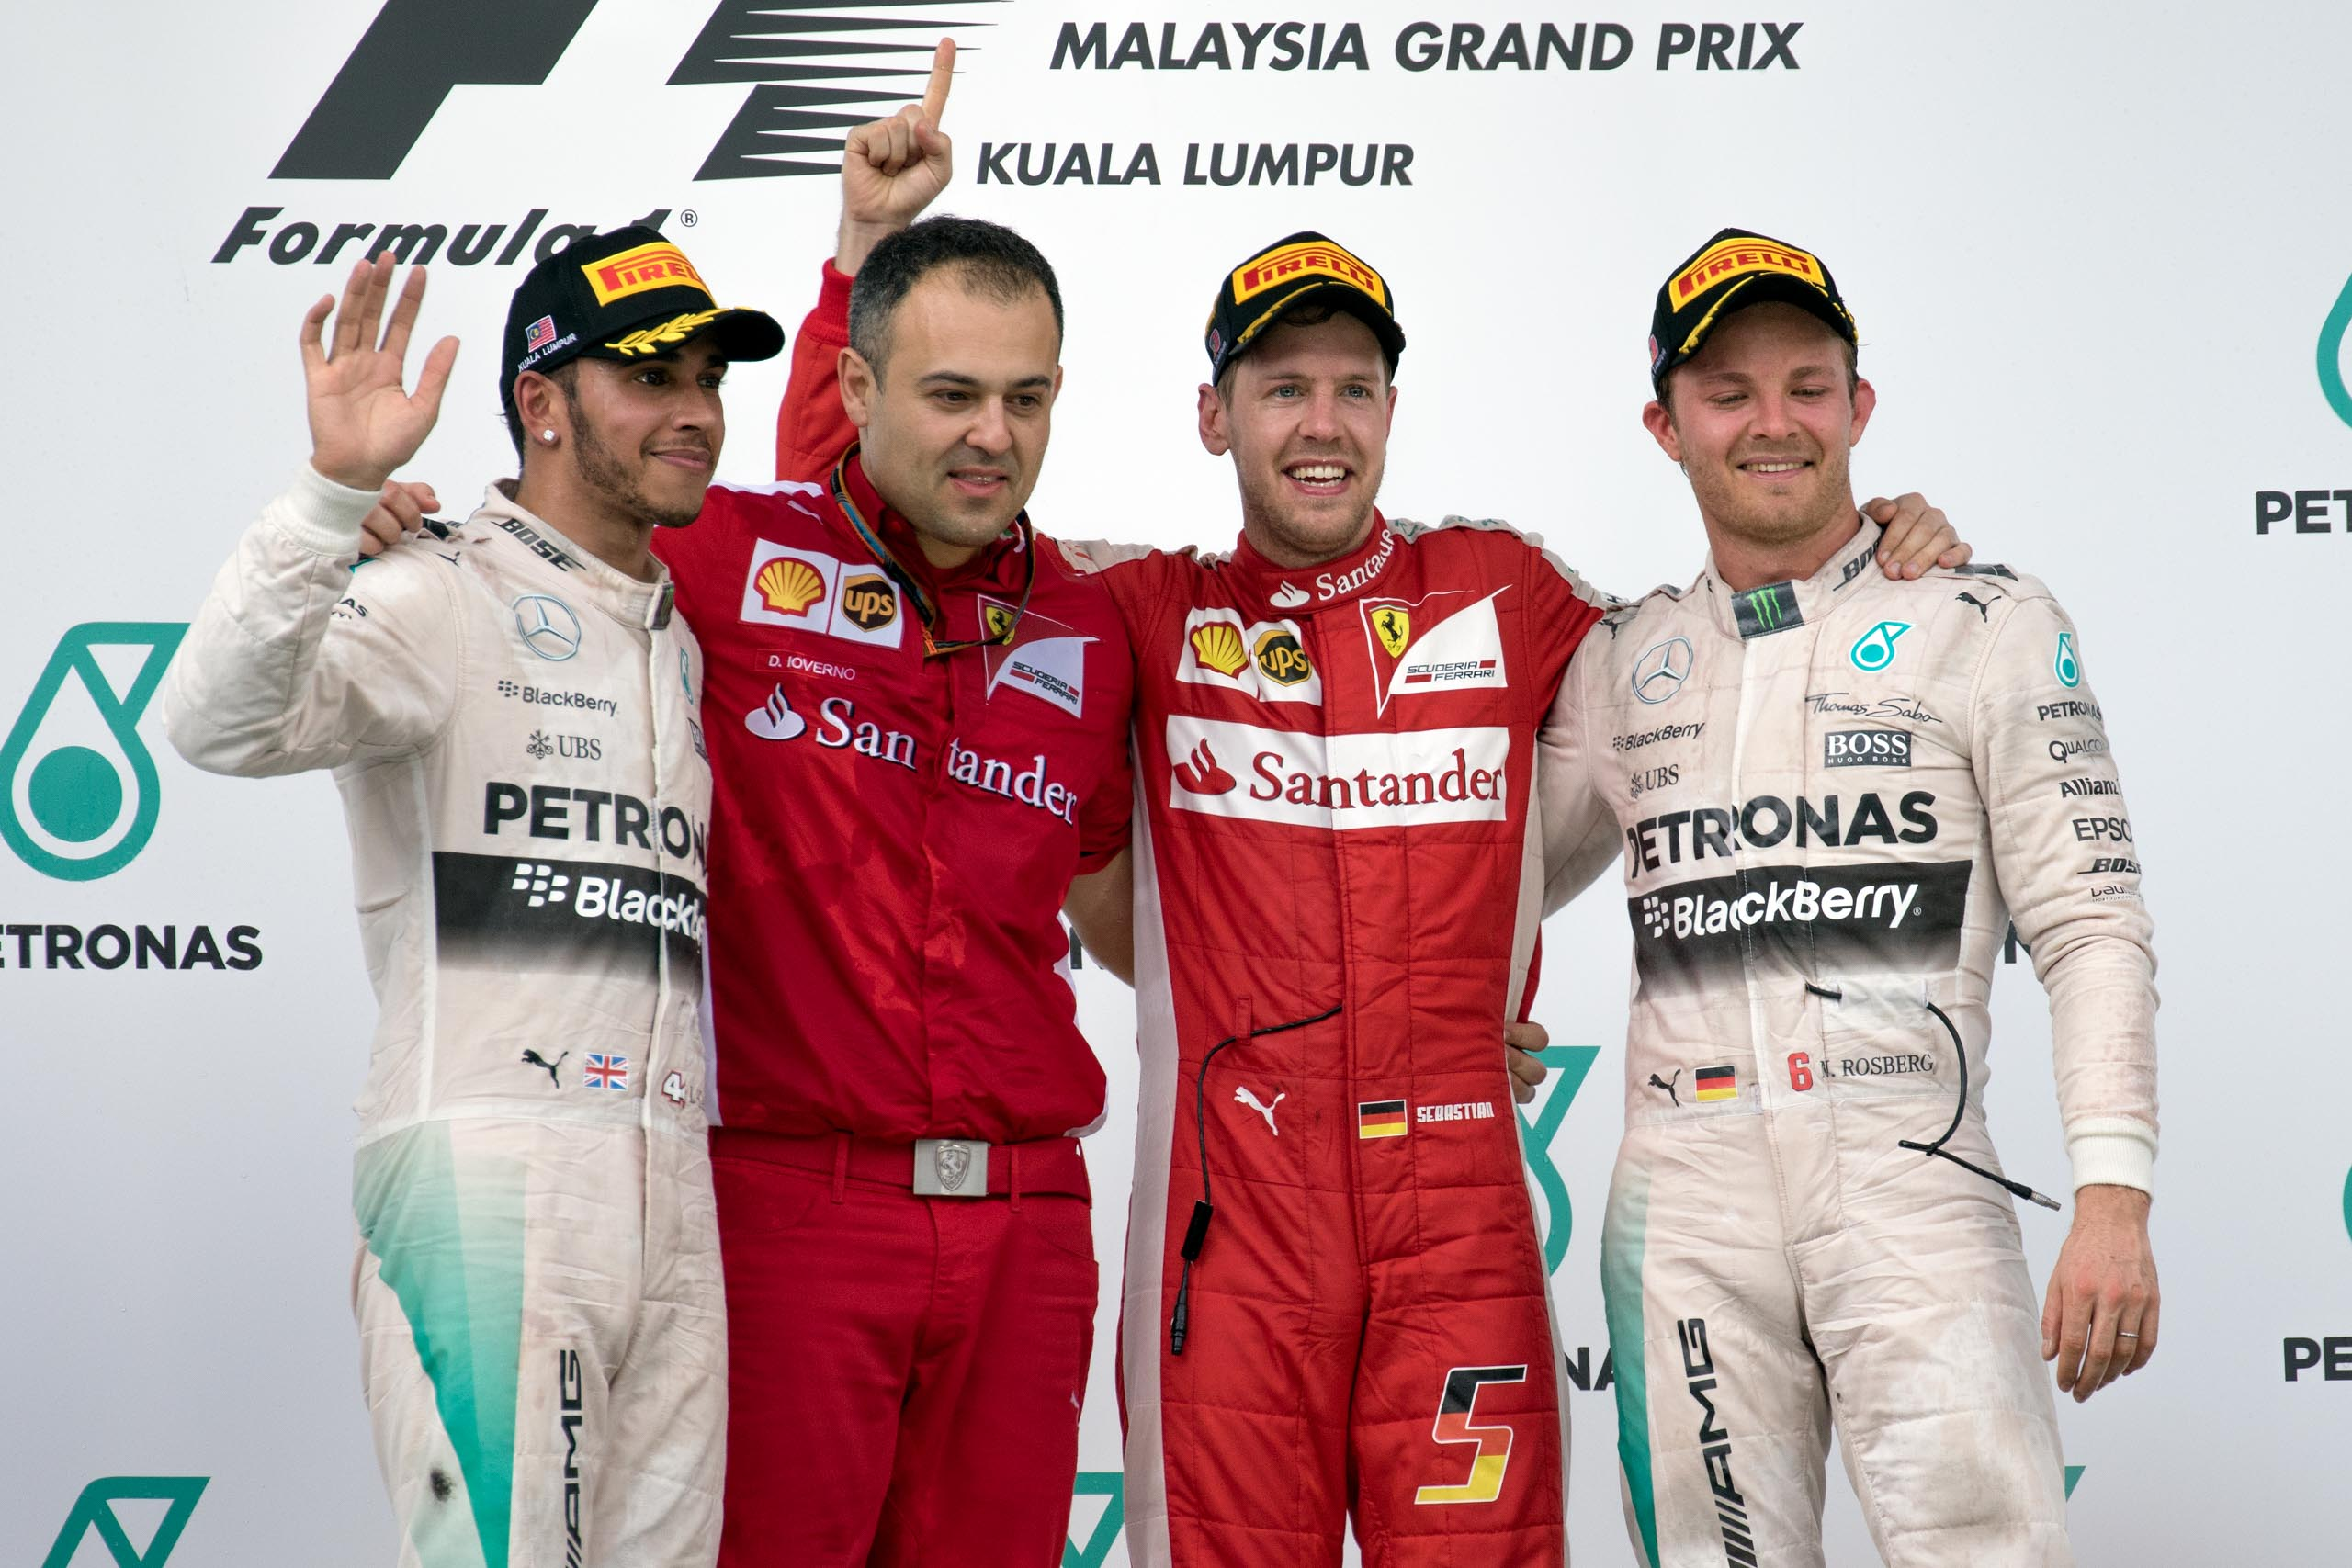 Malaysian Grand Prix 2015 podium: from left - Lewis Hamilton of Mercedes, a Ferrari team representative, Sebastian Vettel of Ferrari, and Nico Rosberg of Mercedes